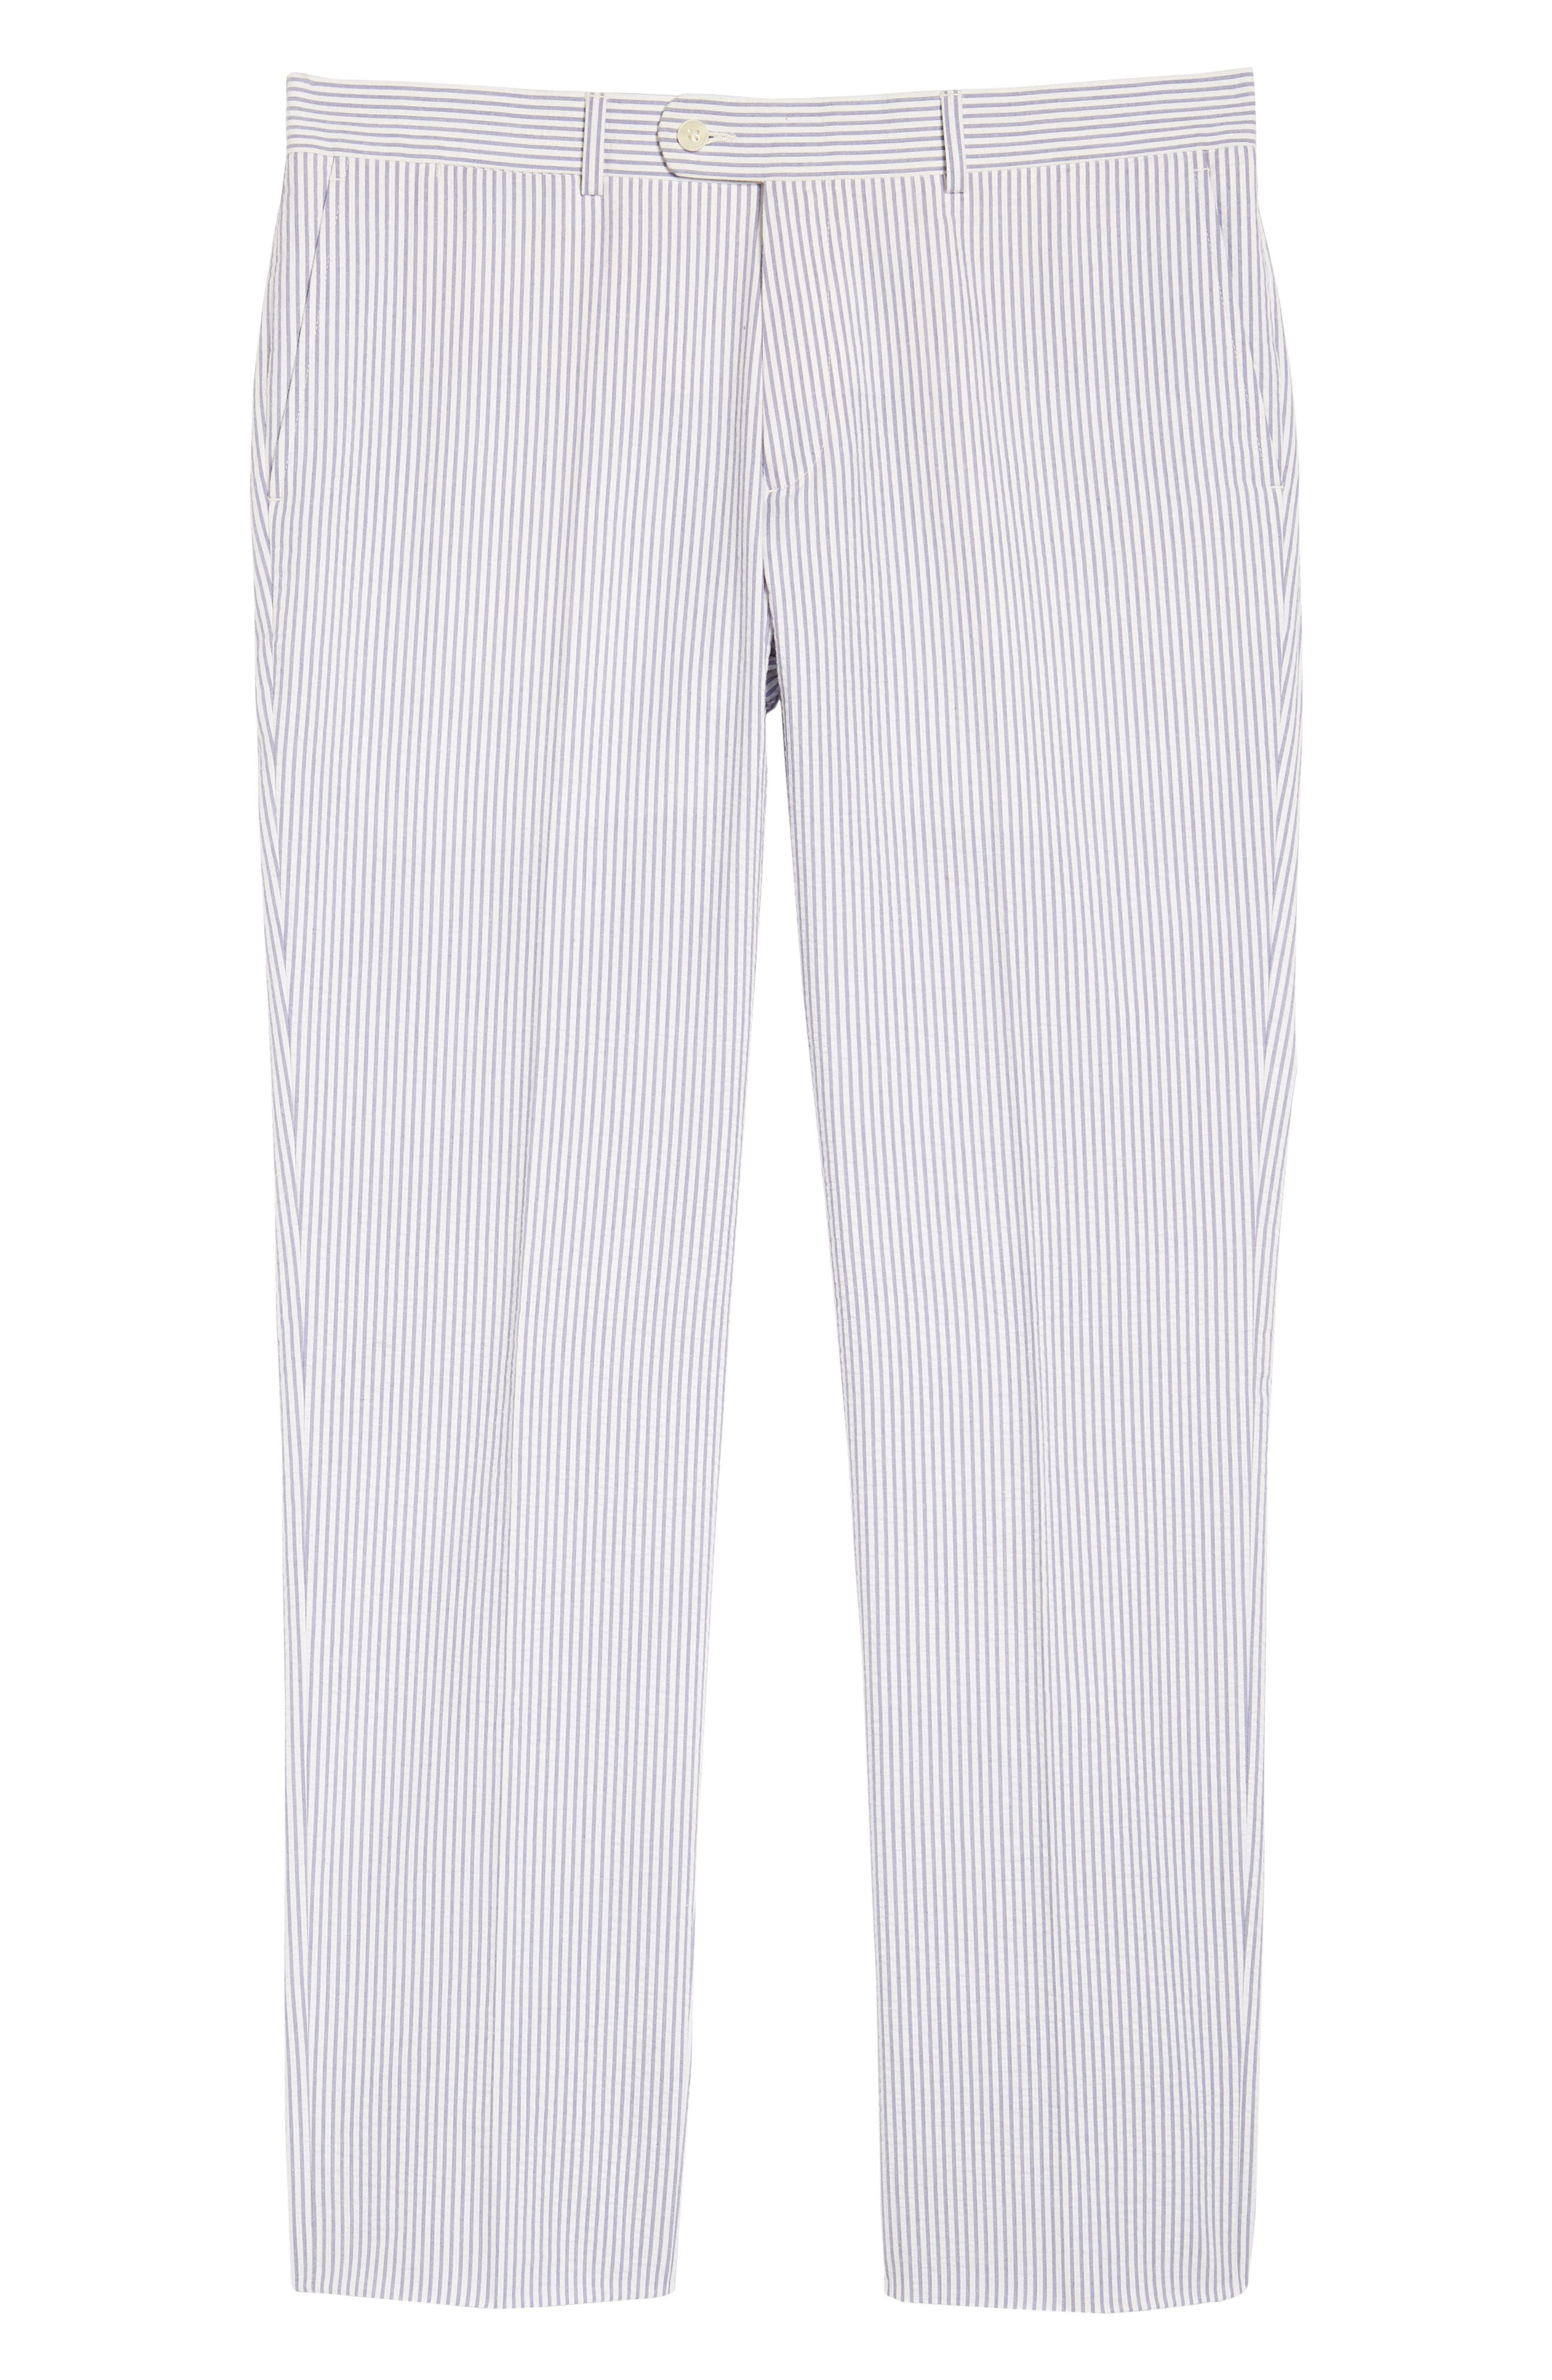 Andrew AIM Flat Front Seersucker Trousers,                             Alternate thumbnail 6, color,                             BLUE AND WHITE